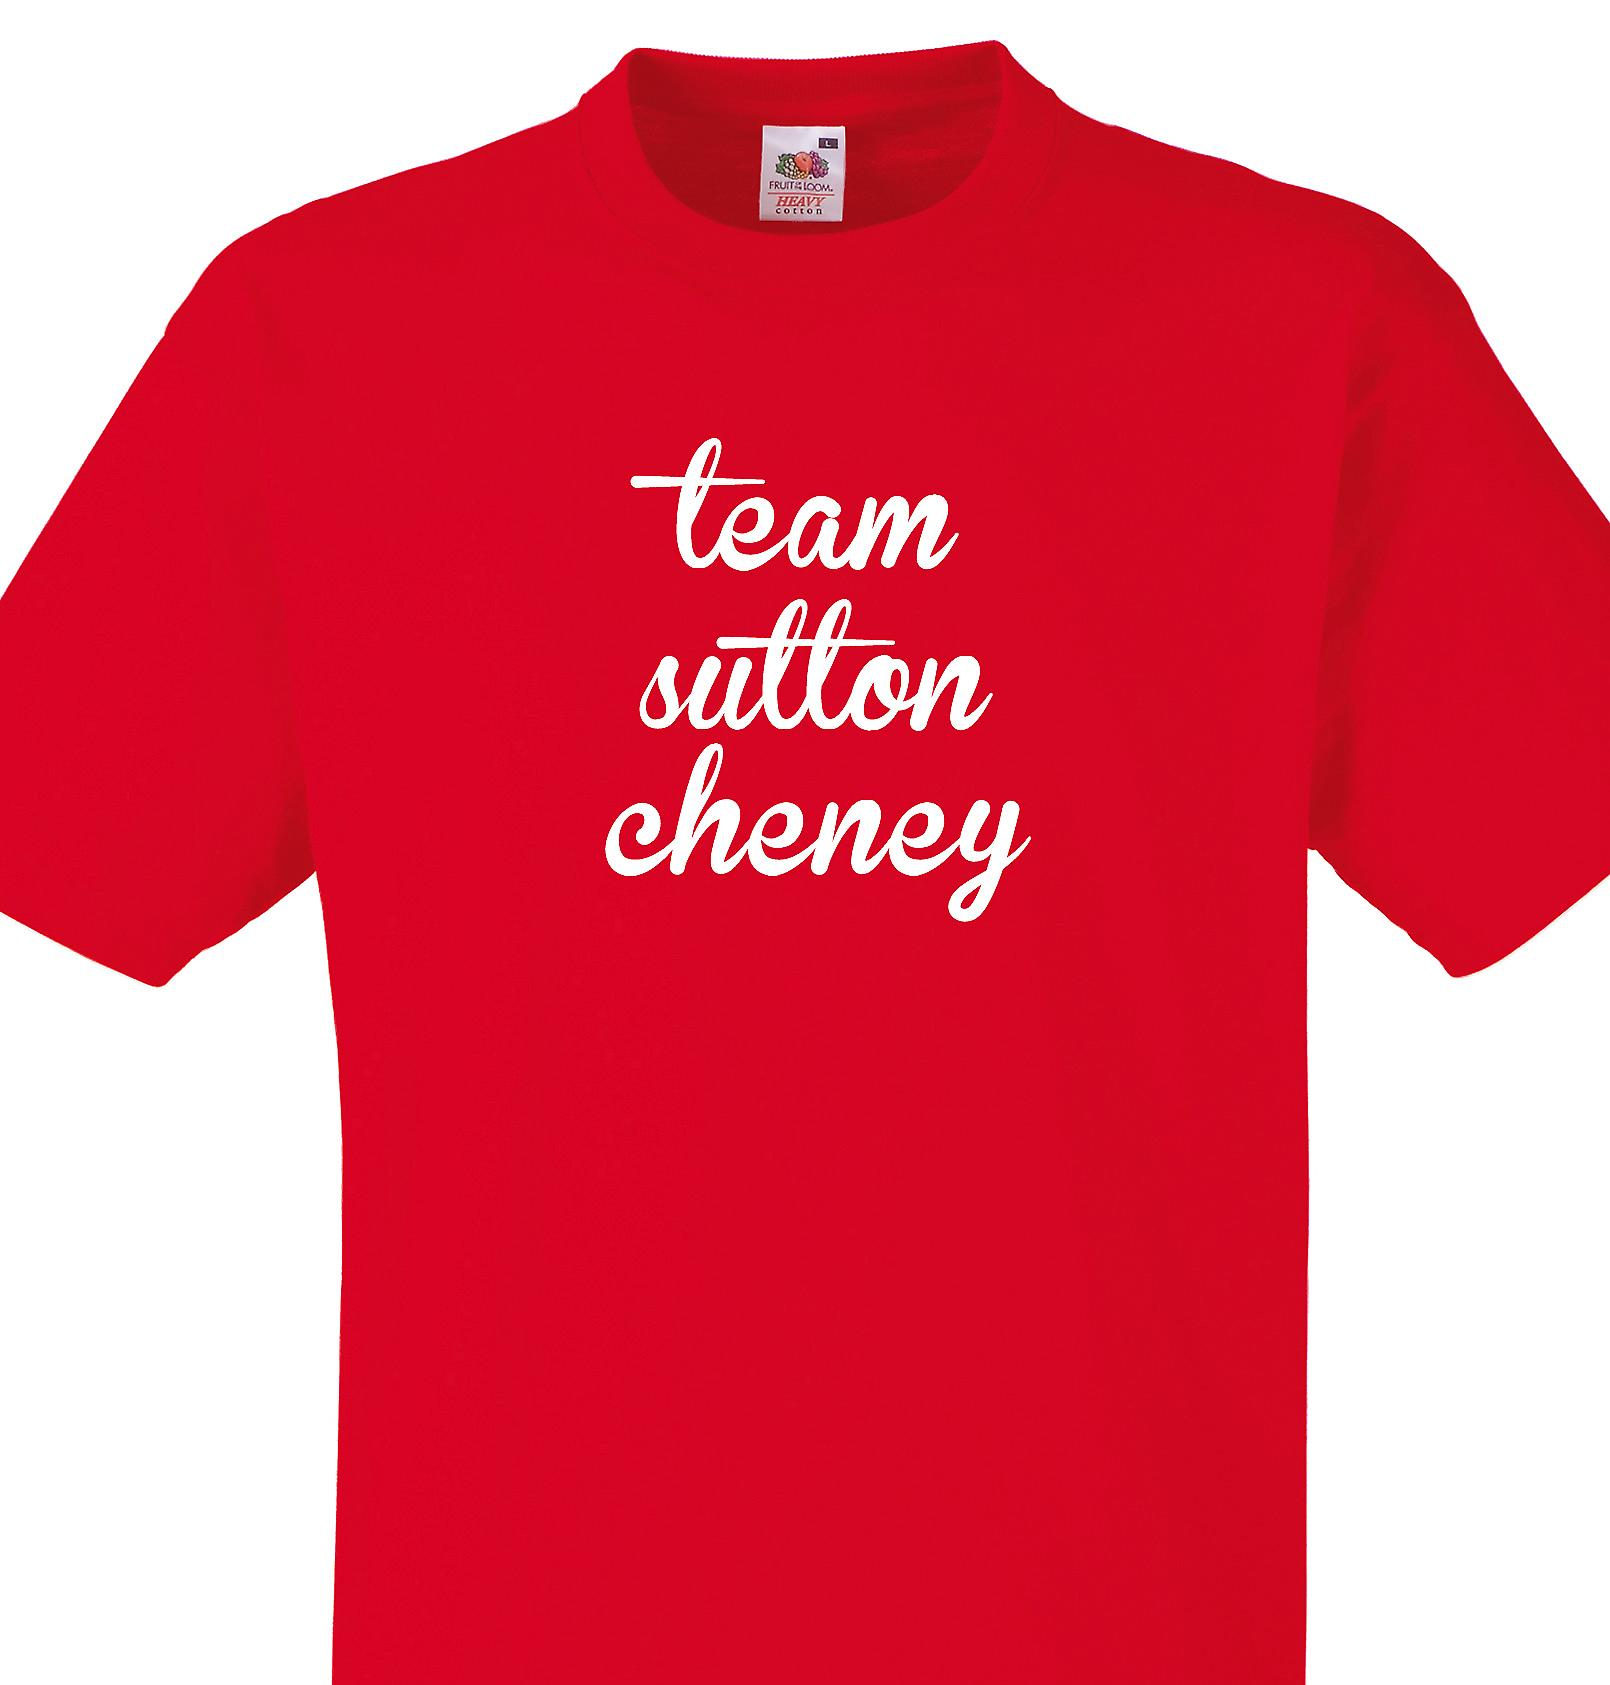 Team Sutton cheney Red T shirt